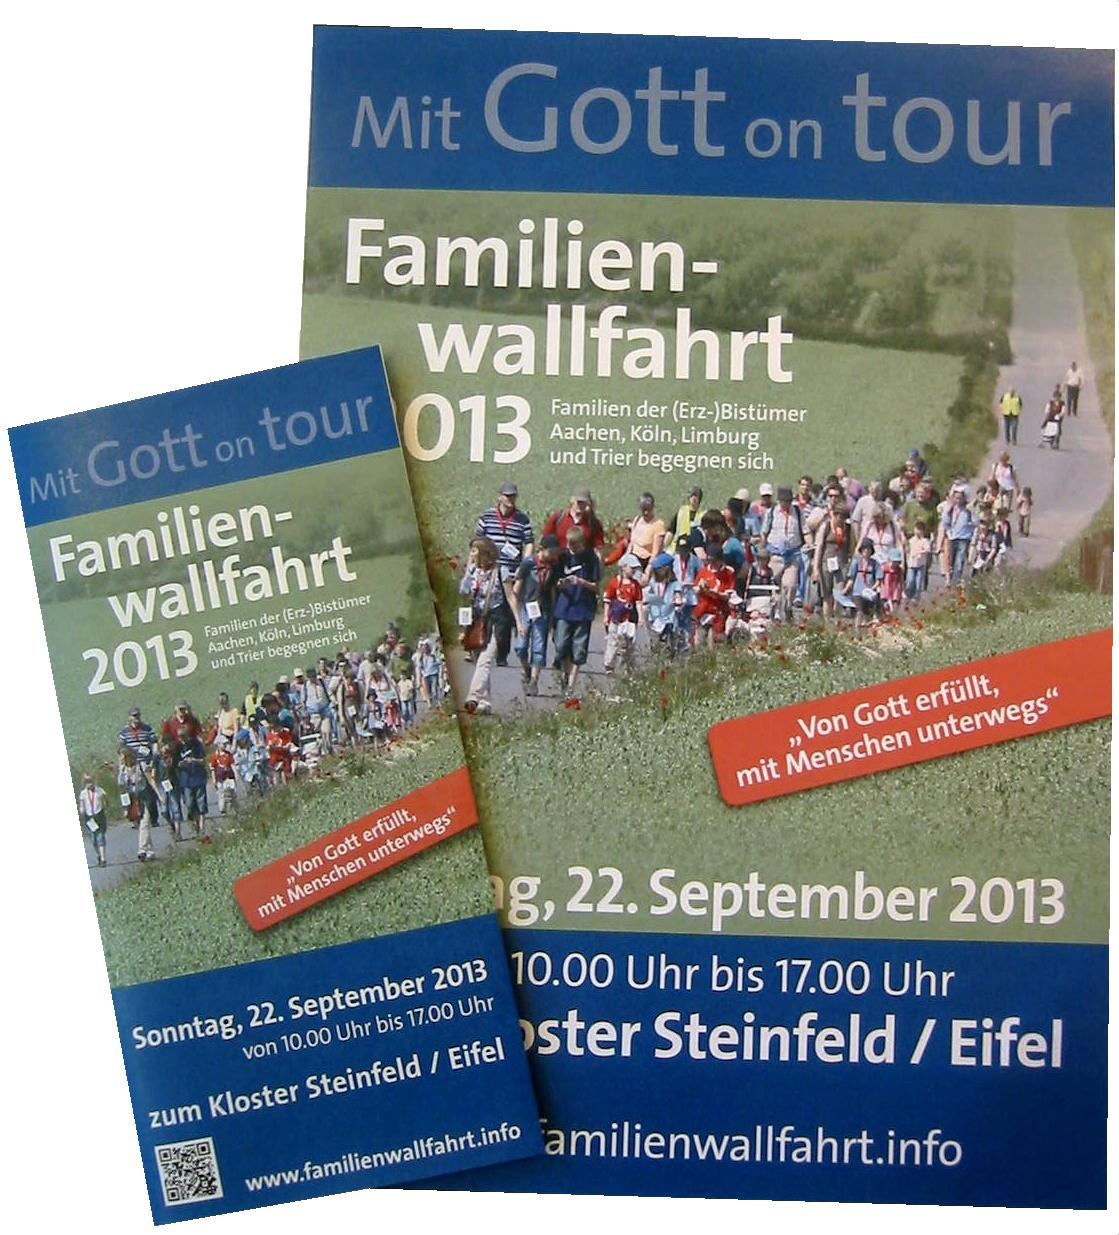 Mit Gott on tour – Familienwallfahrt am 22. September